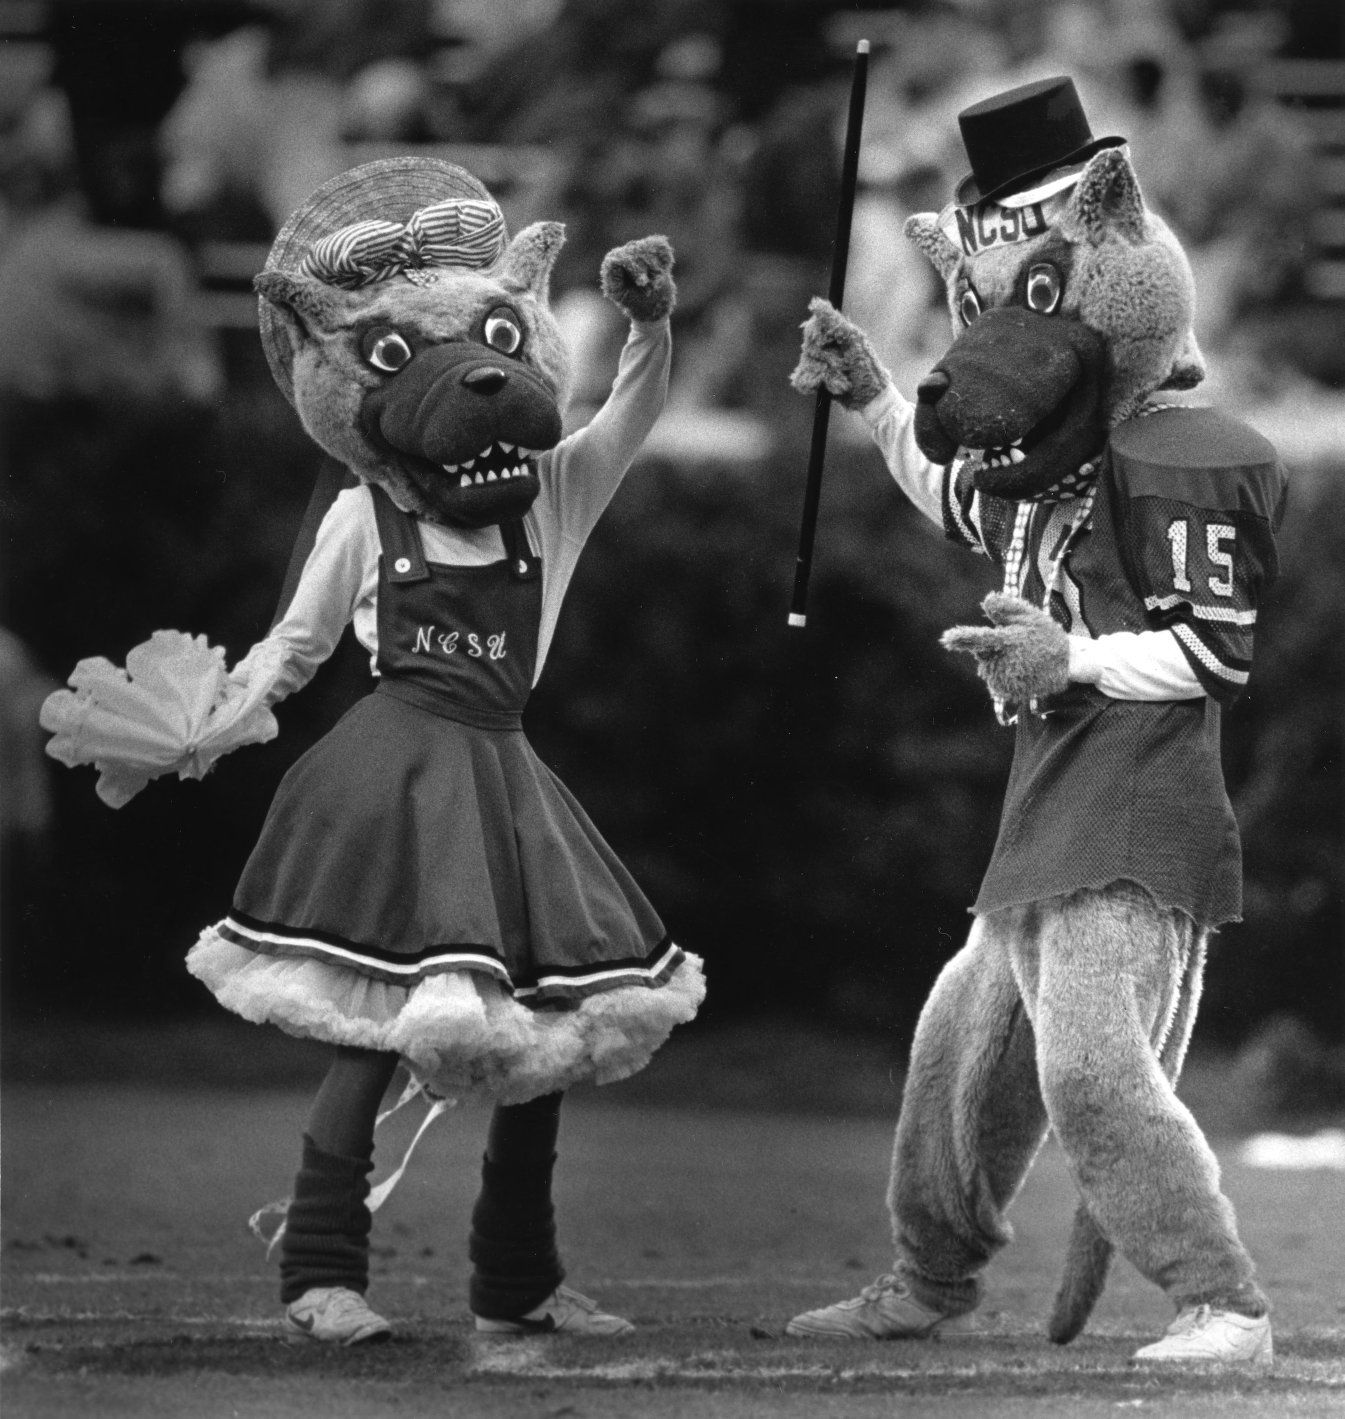 Mr. And Mrs. Wuf Dancing At N.C. State Vs. University Of